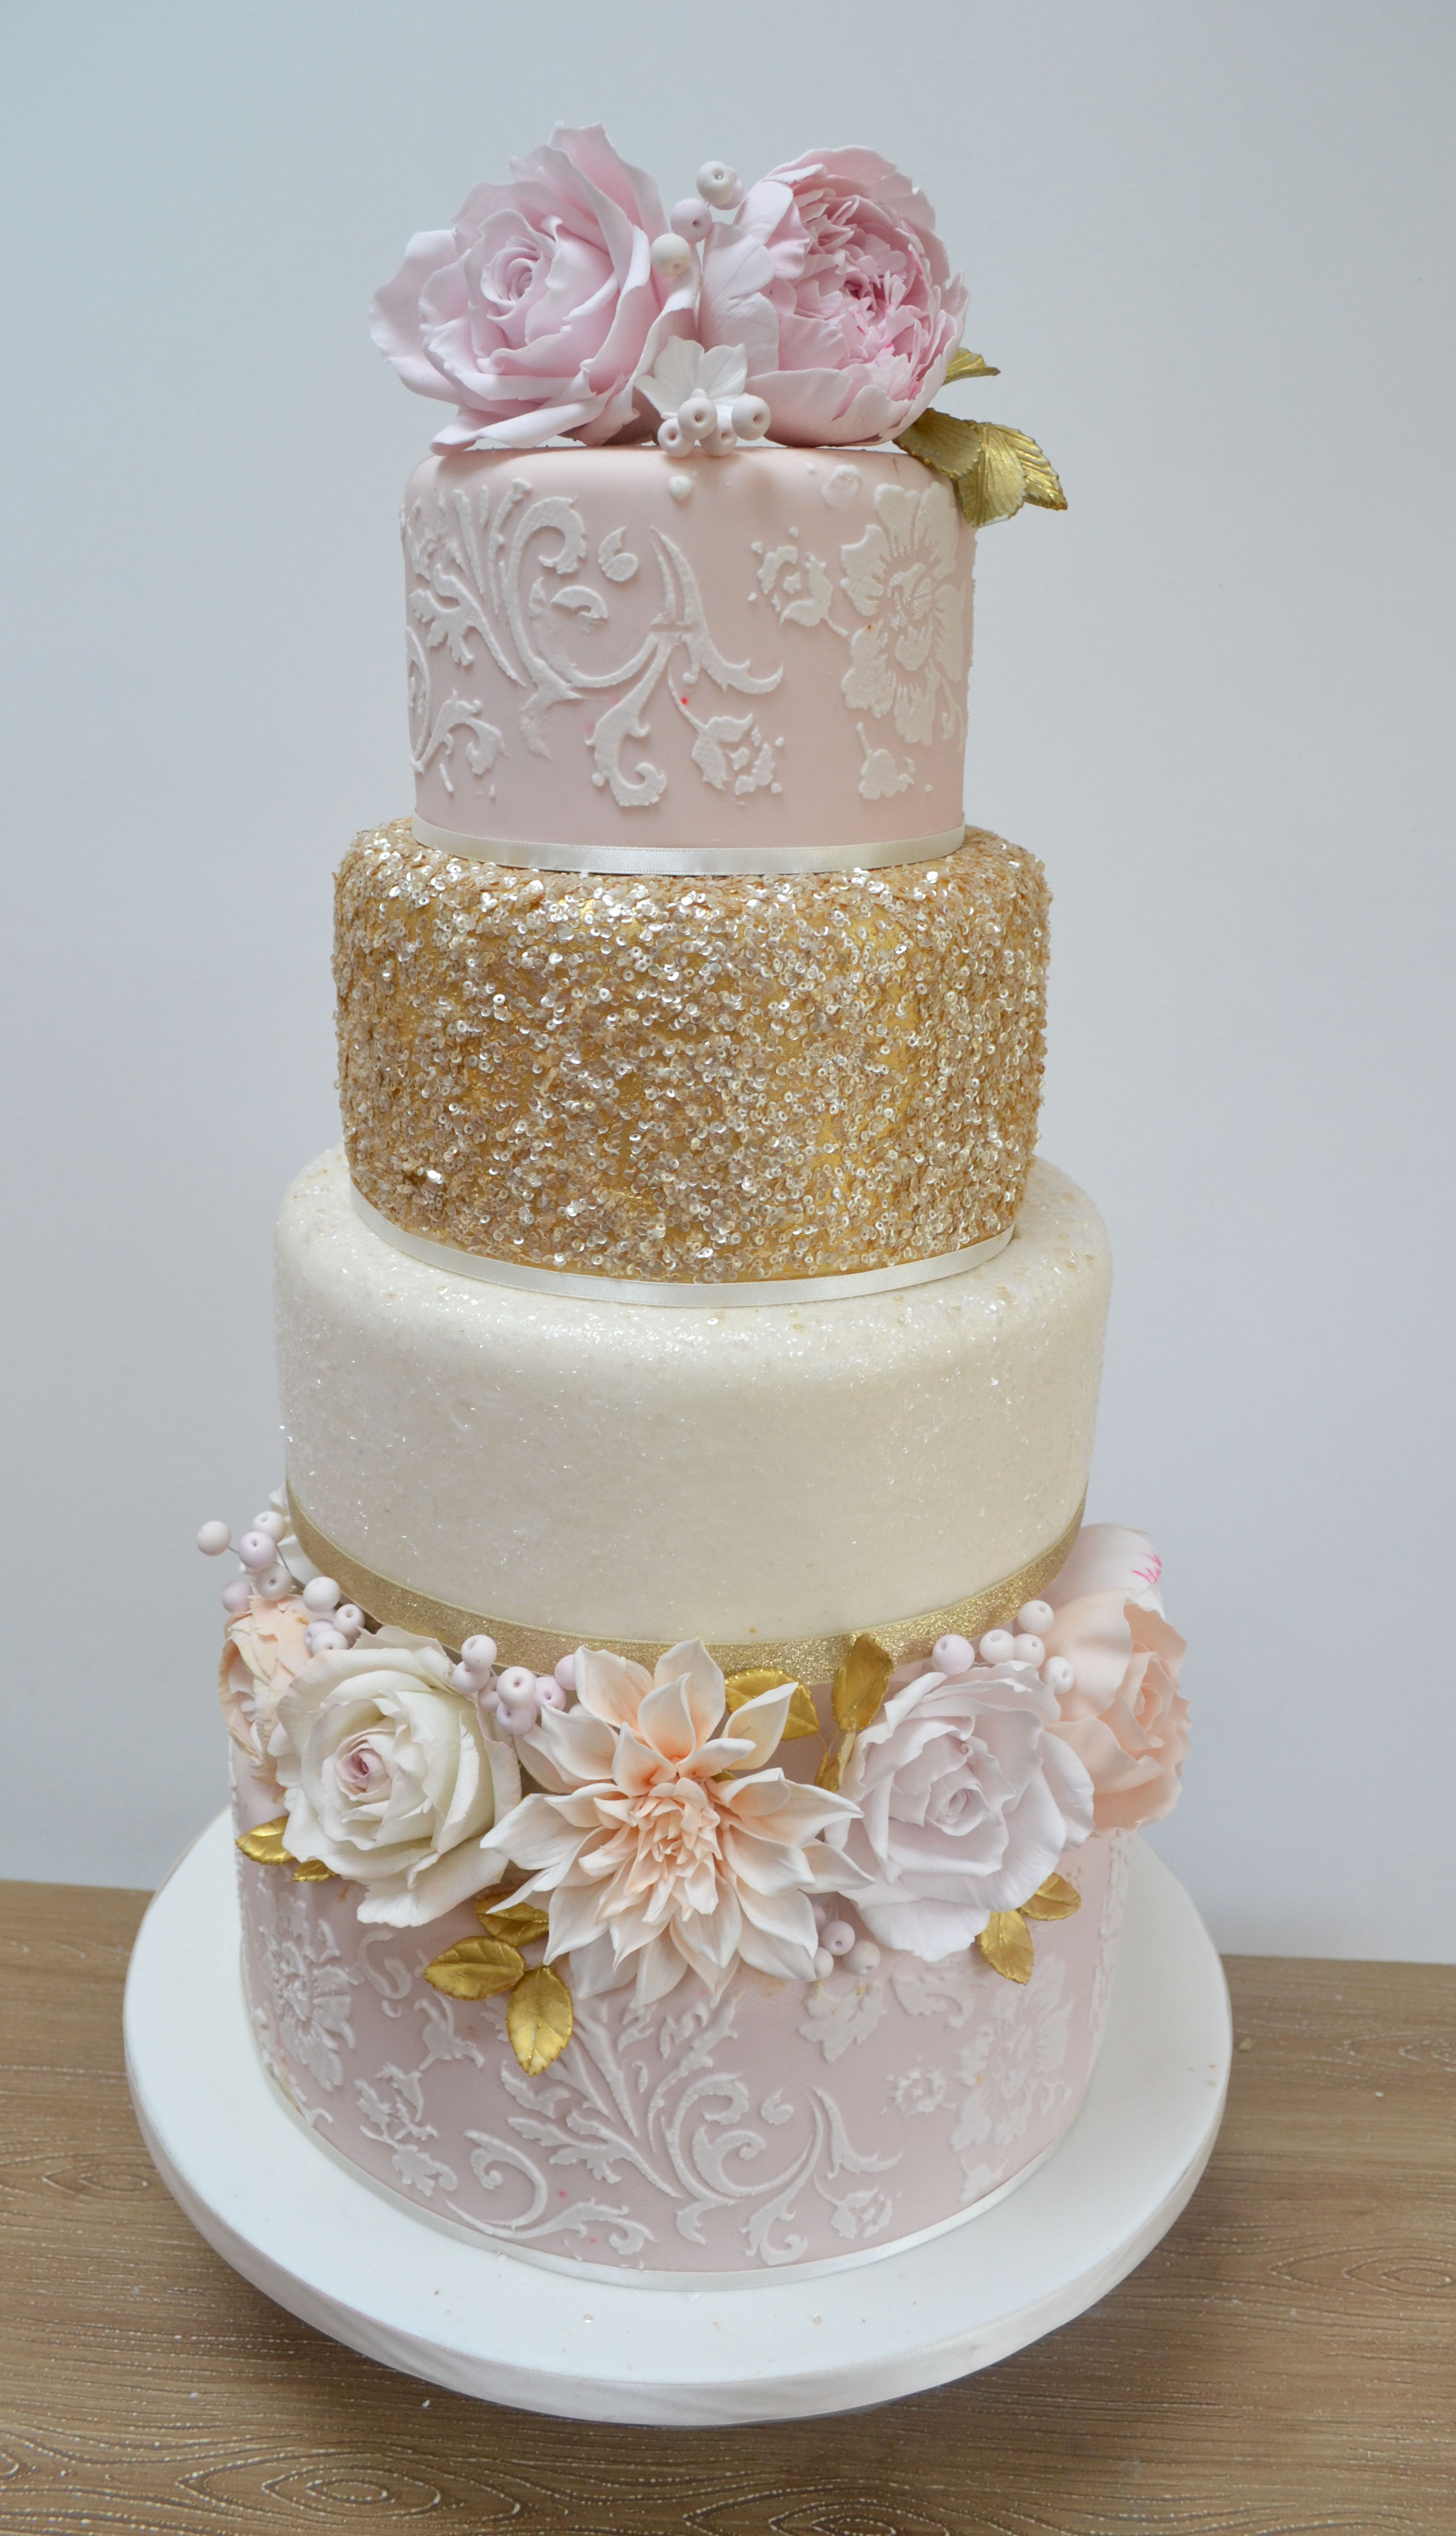 Cake Decorating Courses Solihull